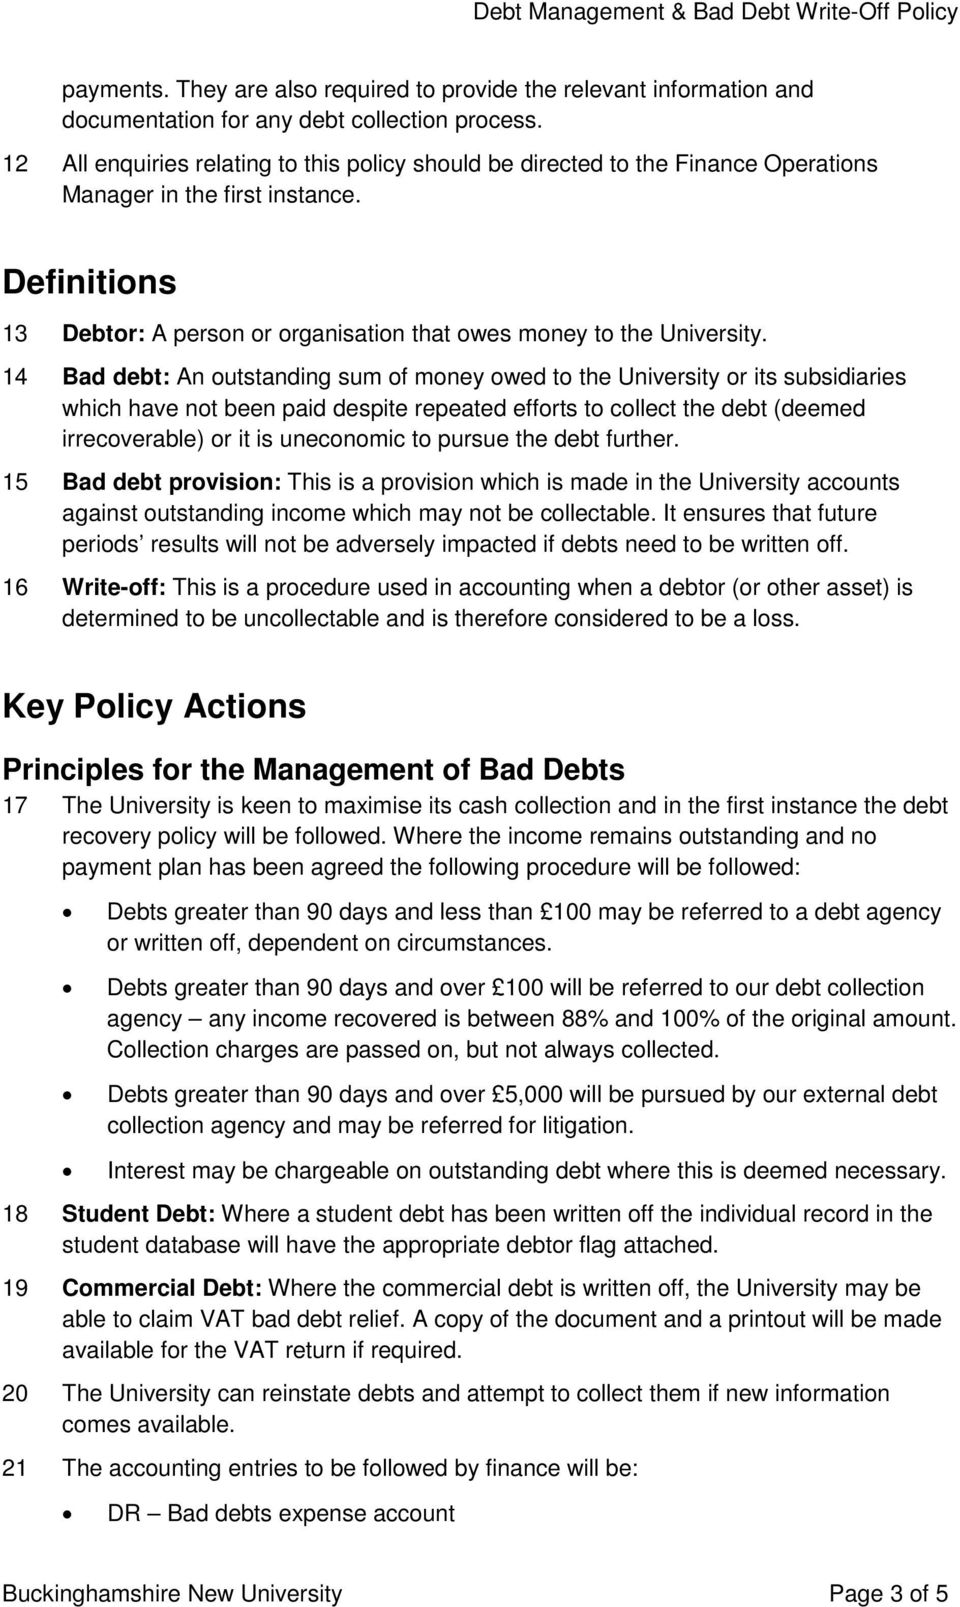 14 Bad debt: An outstanding sum of money owed to the University or its subsidiaries which have not been paid despite repeated efforts to collect the debt (deemed irrecoverable) or it is uneconomic to